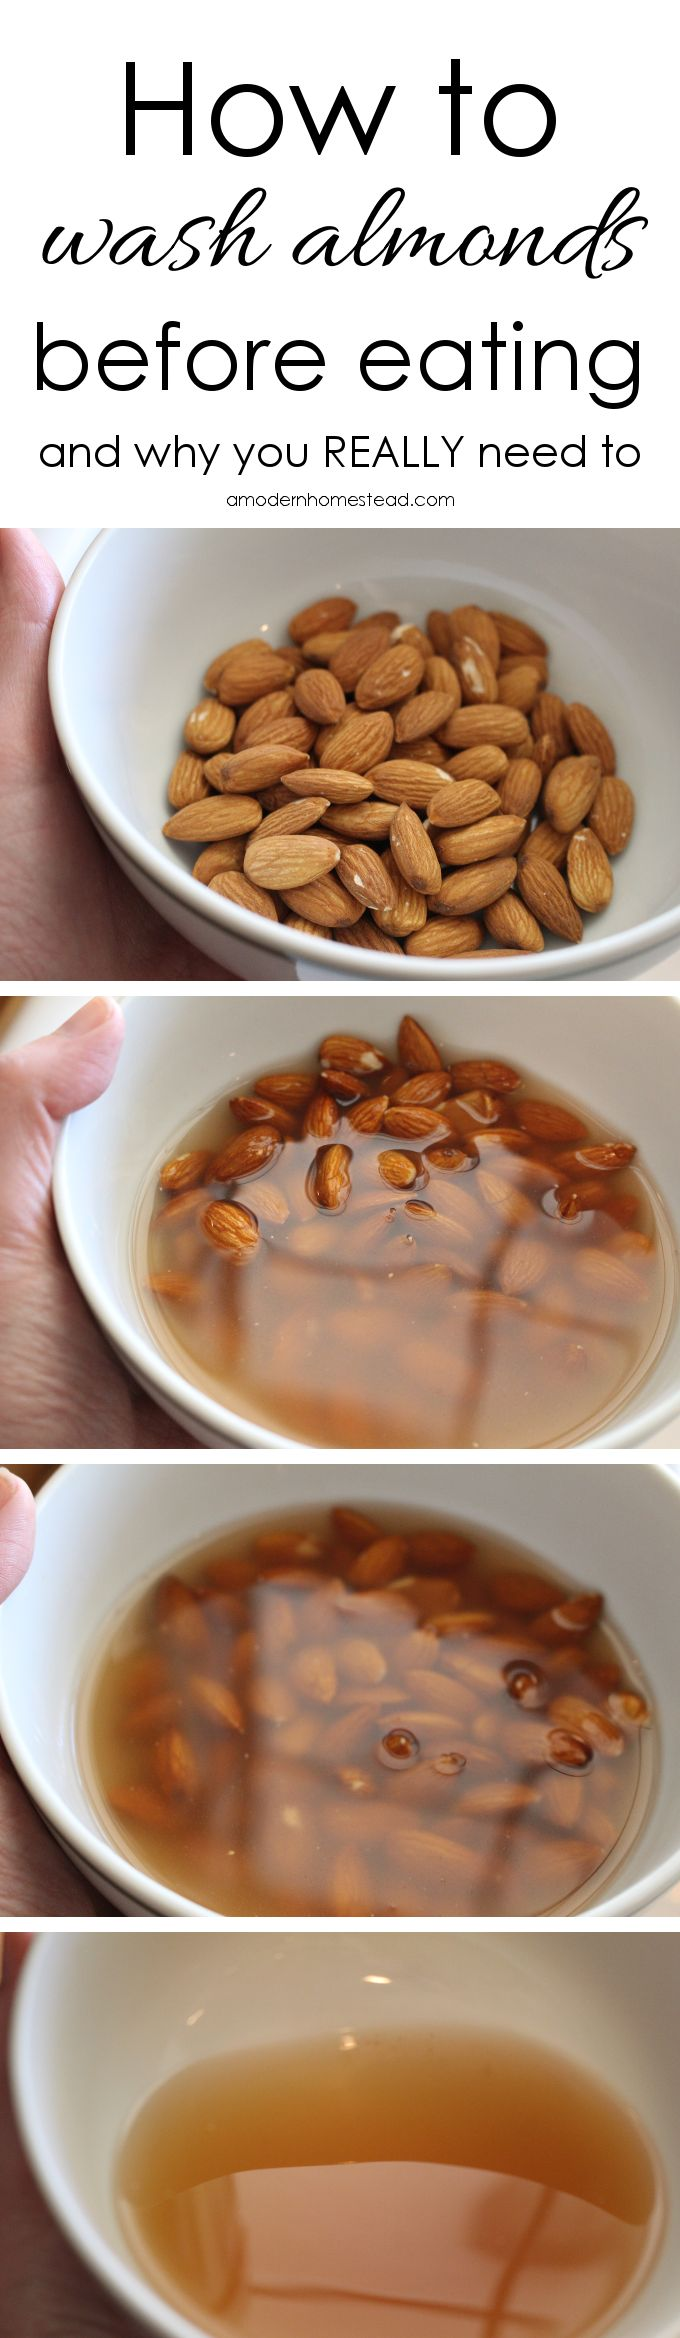 Almonds are a great nut to add to any dish. But did you know that you need to…